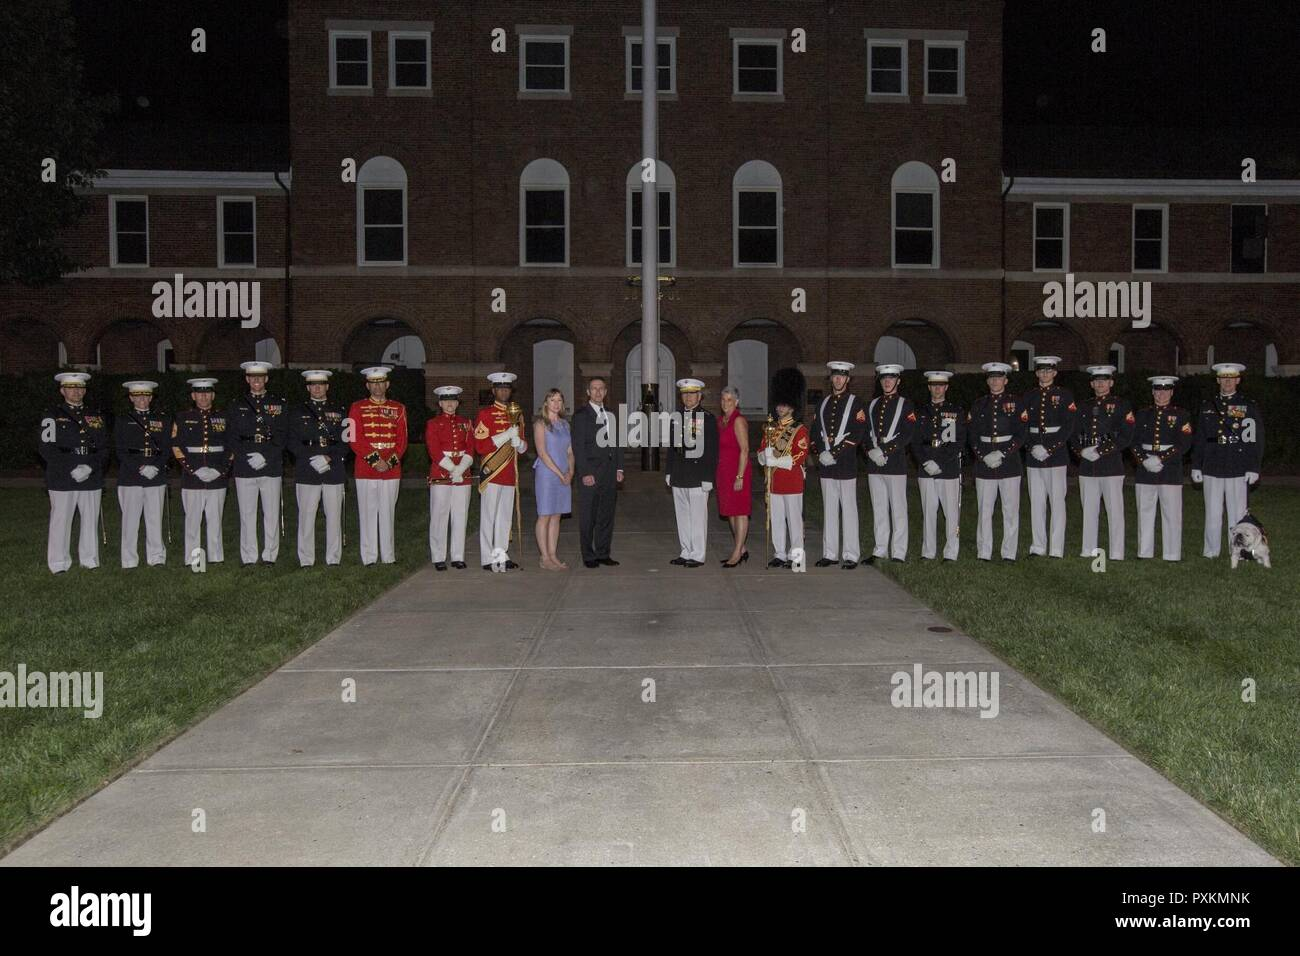 Secretary of the Navy the Honorable Sean J. Stackley, center left, and the Commandant of the Marine Corps Gen. Robert B. Neller, center right, pose for a photo with U.S. Marines from Marine Barracks Washington following an evening parade at Marine Barracks Washington, Washington, D.C., June 9, 2017. Evening parades are held as a means of honoring senior officials, distinguished citizens and supporters of the Marine Corps. Stock Photo